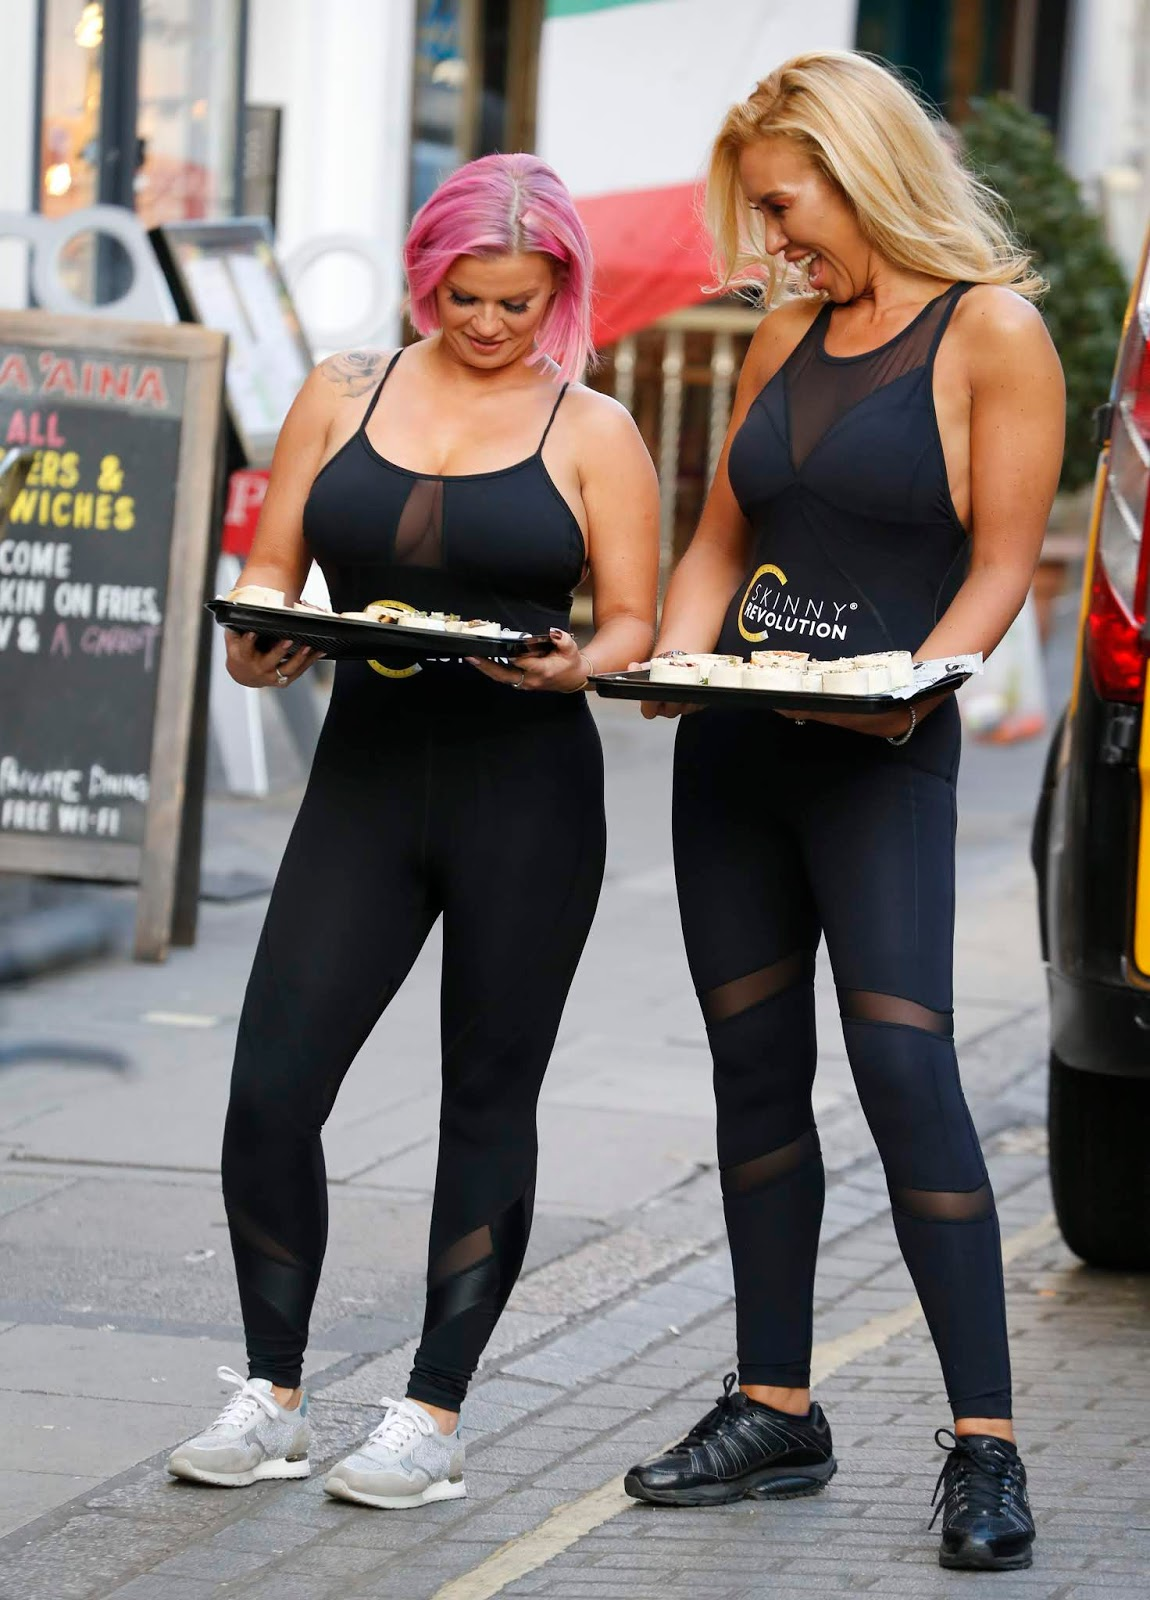 Kerry Katona Helps Amipka Pickston Launch Her New Weight Control Programme Skinny Revolution In London 01/08/2019